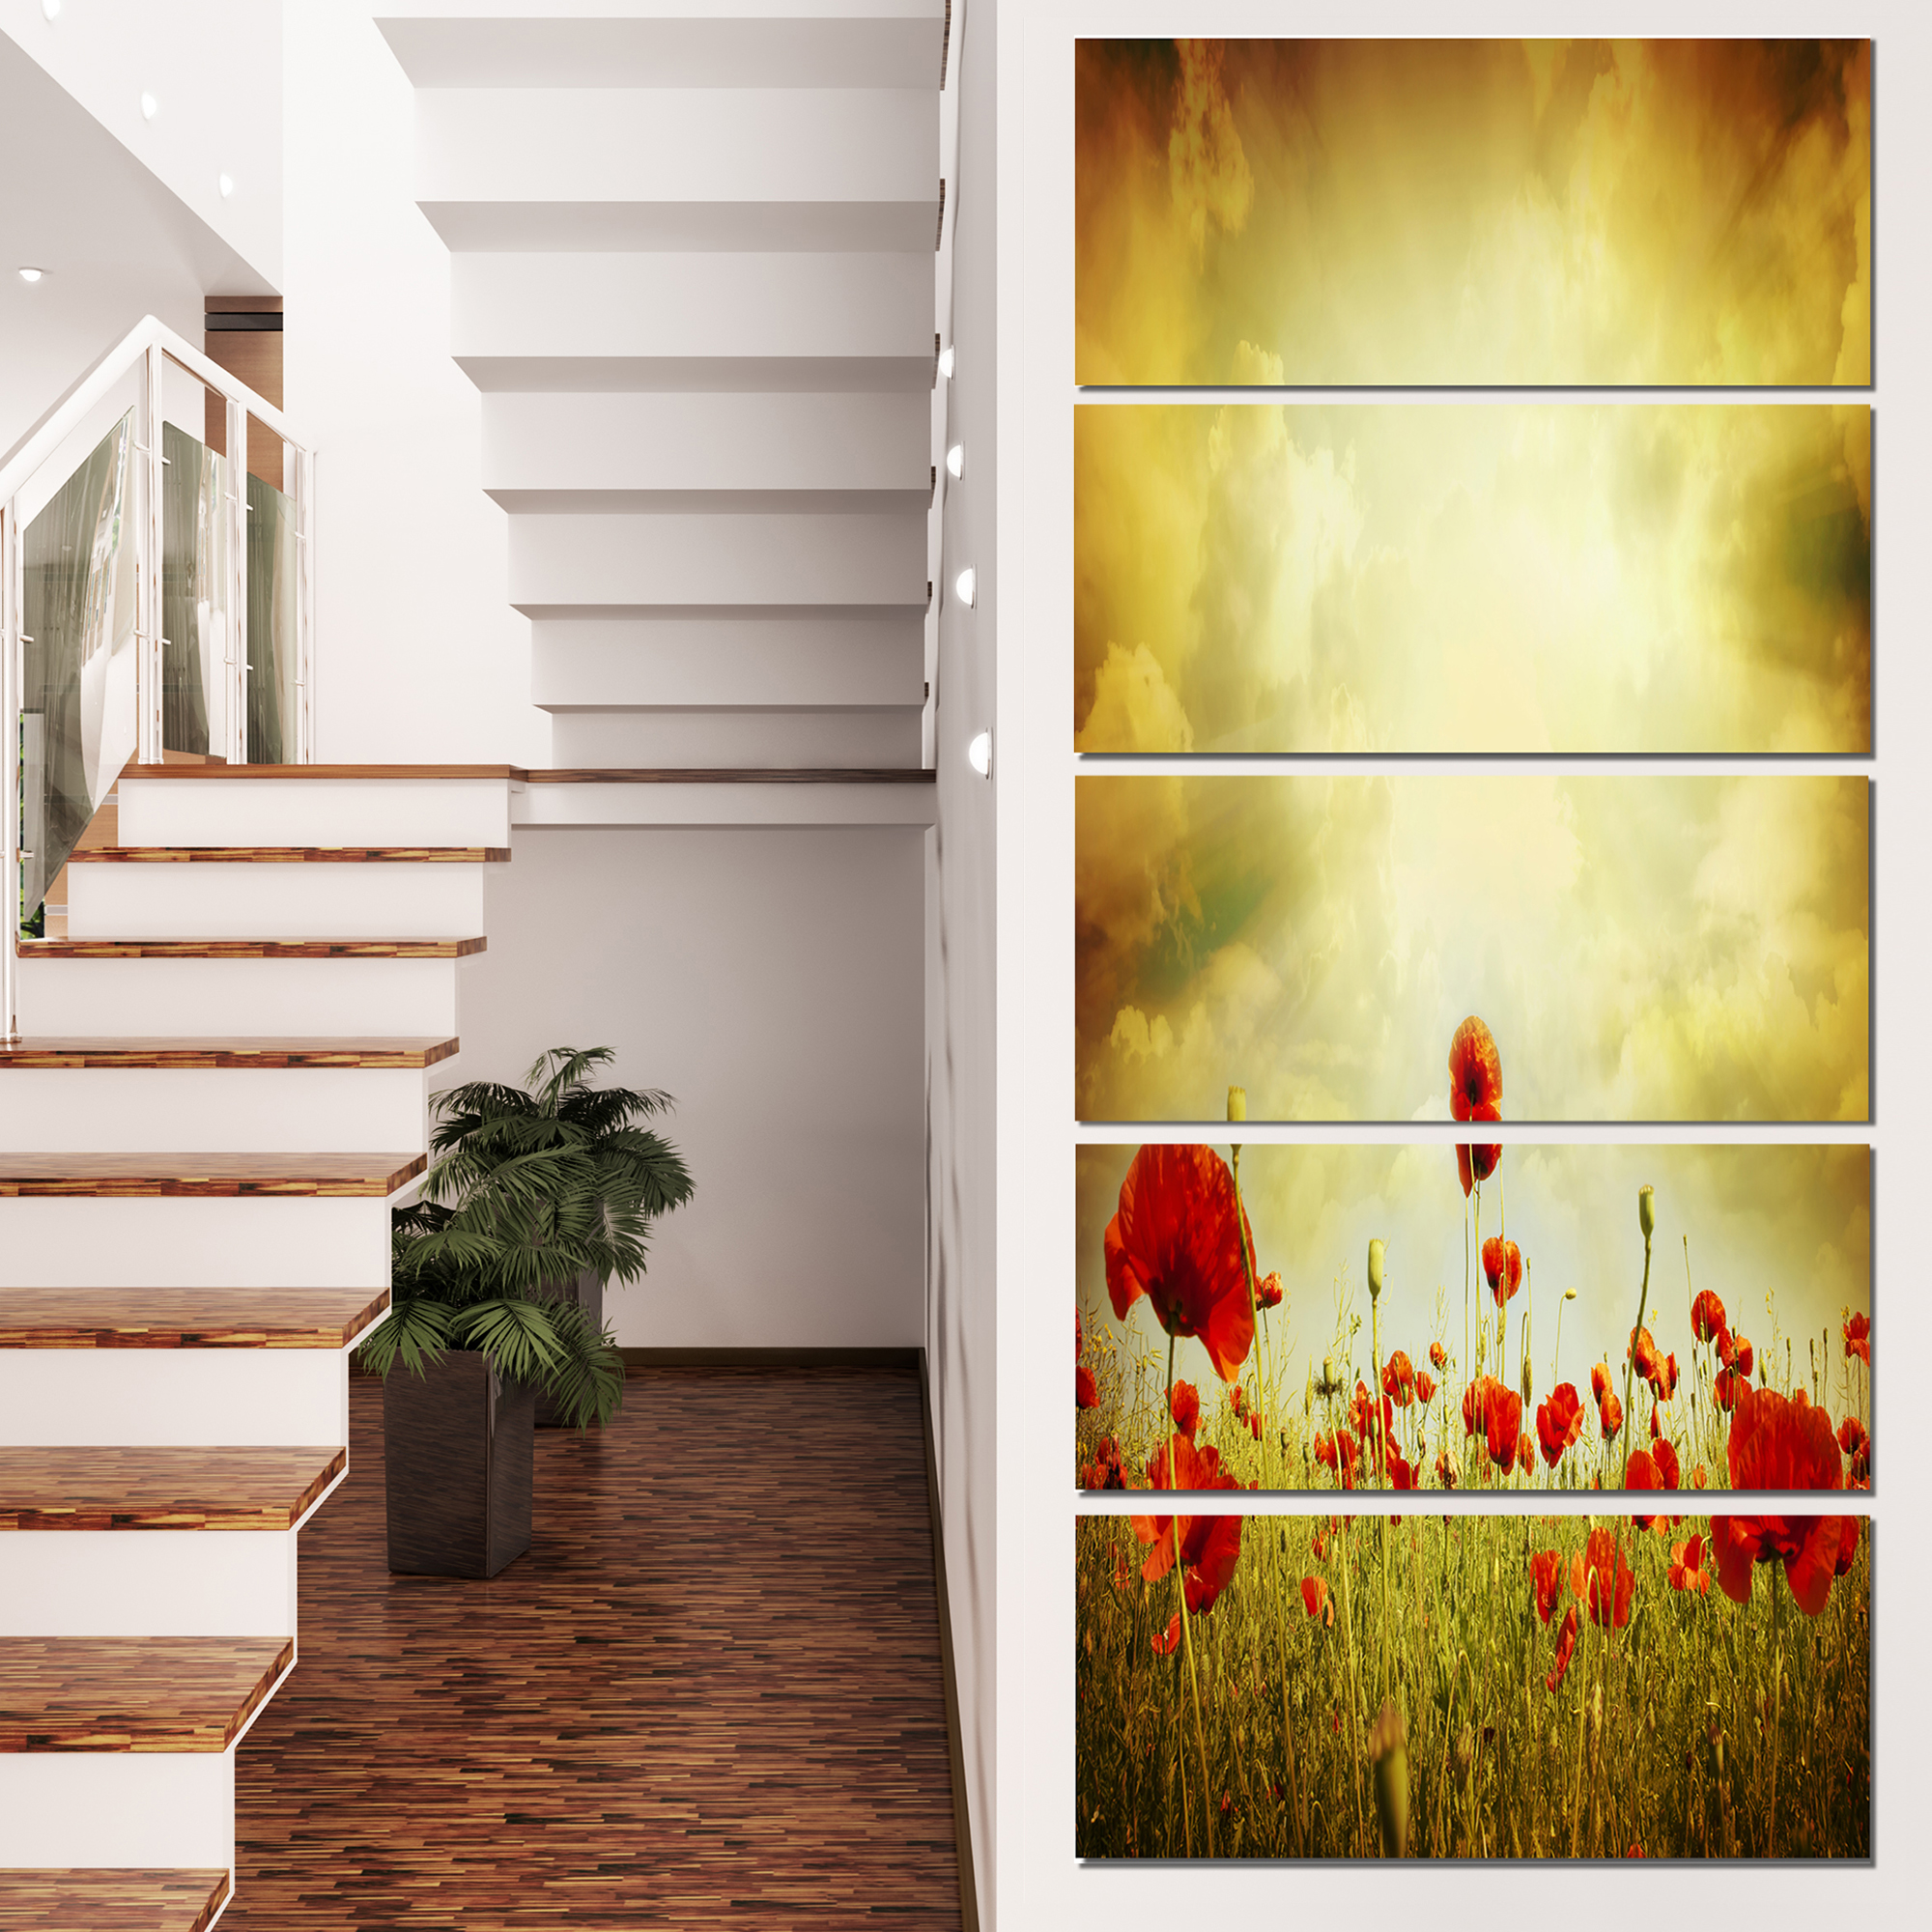 Red Poppies on Grunge Background - Floral Canvas Art Print - image 3 de 3